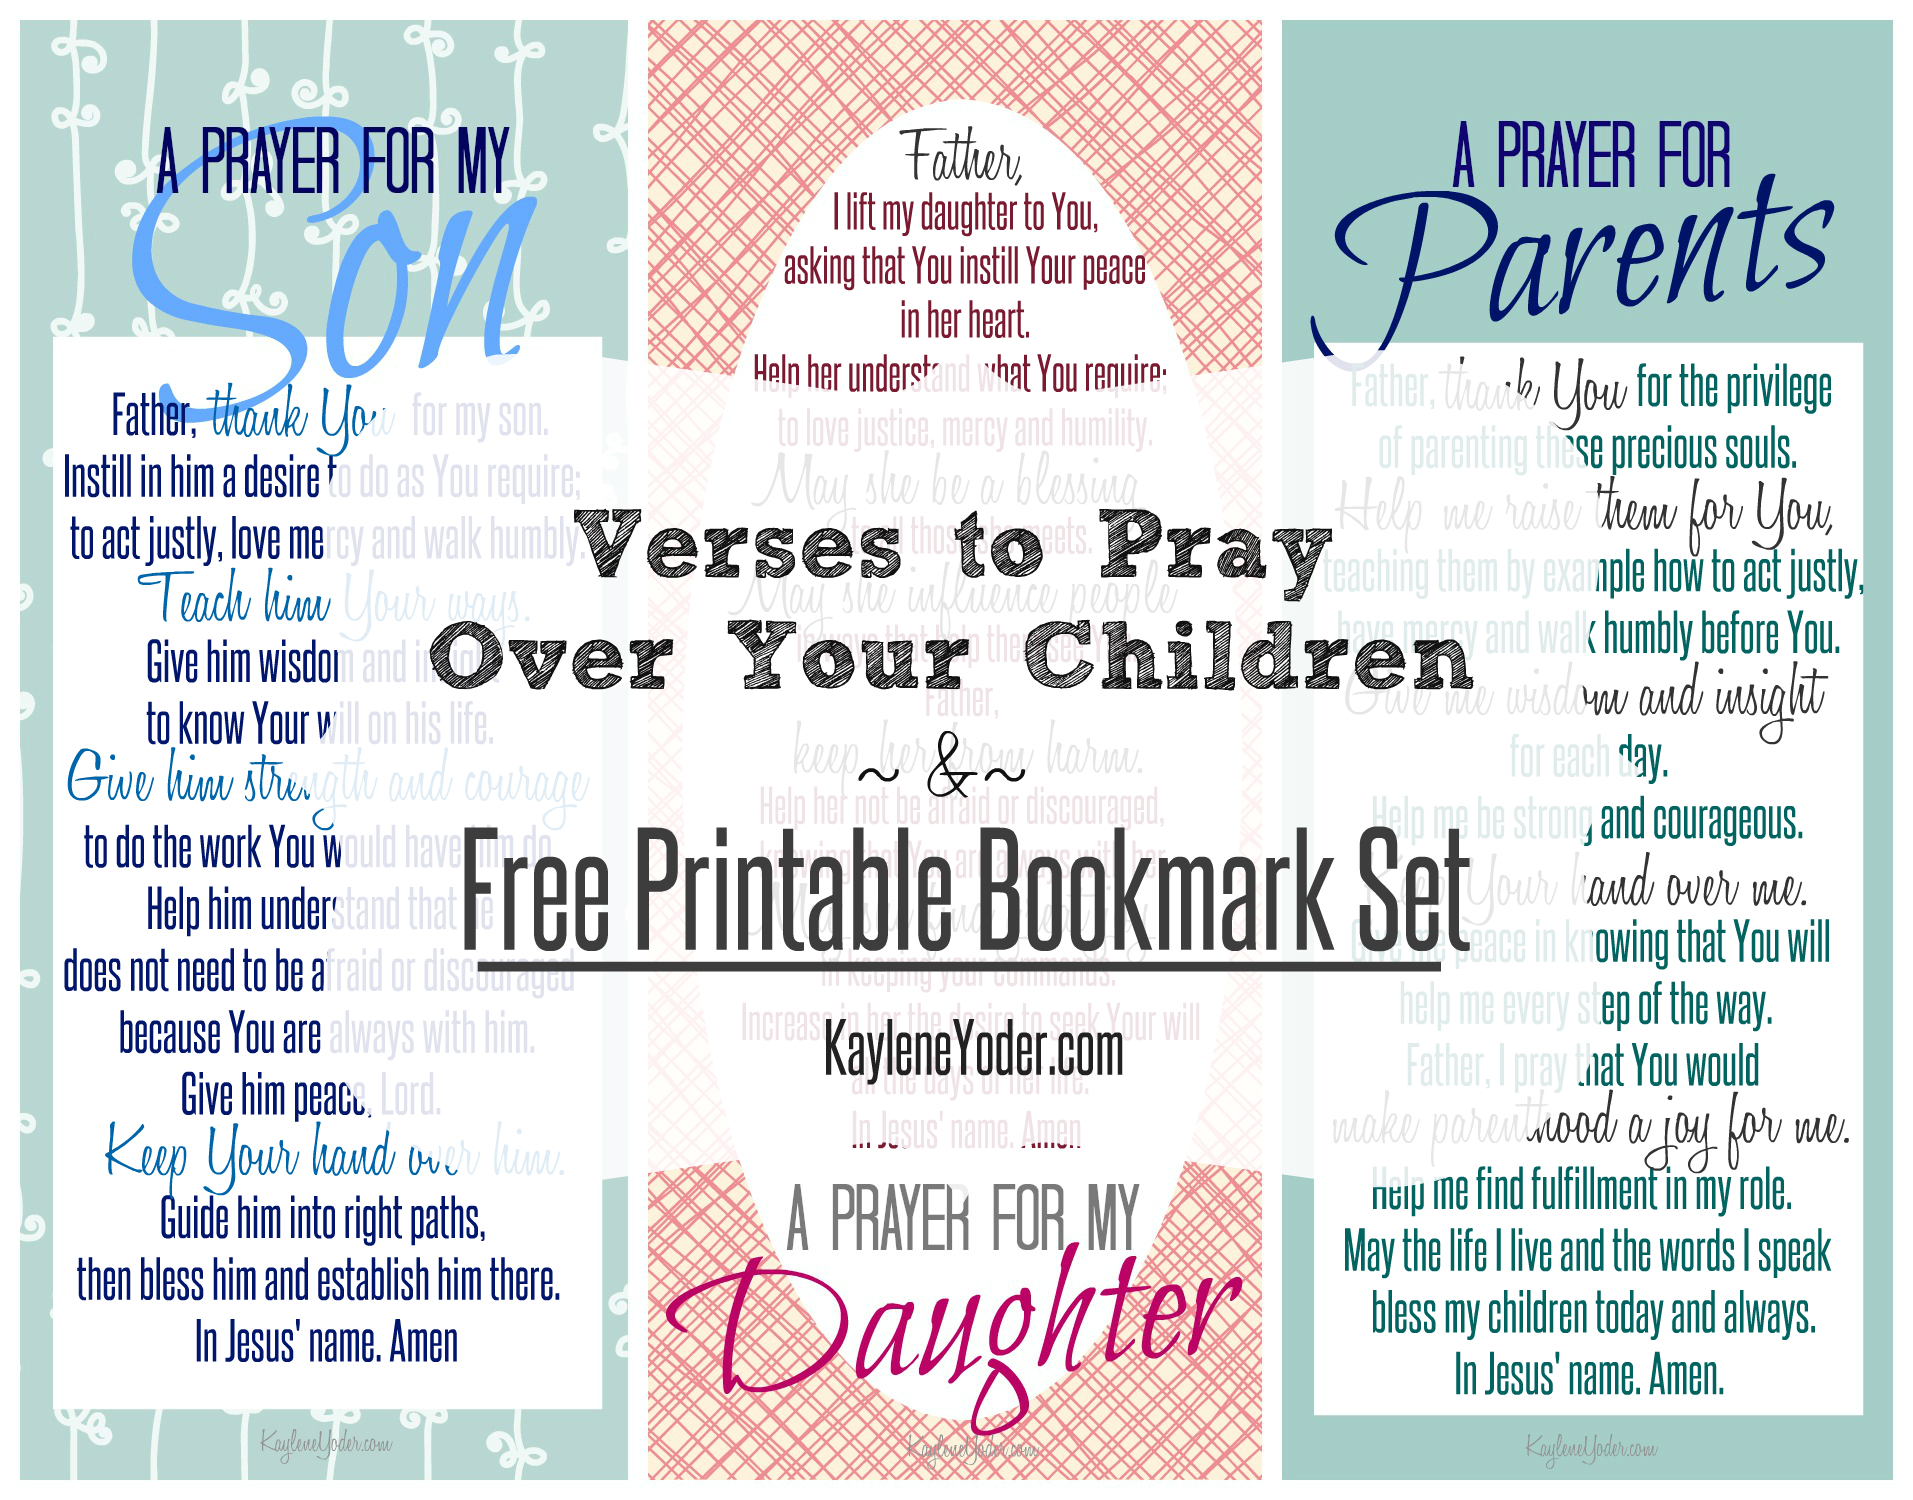 verses to pray over your children and free printable